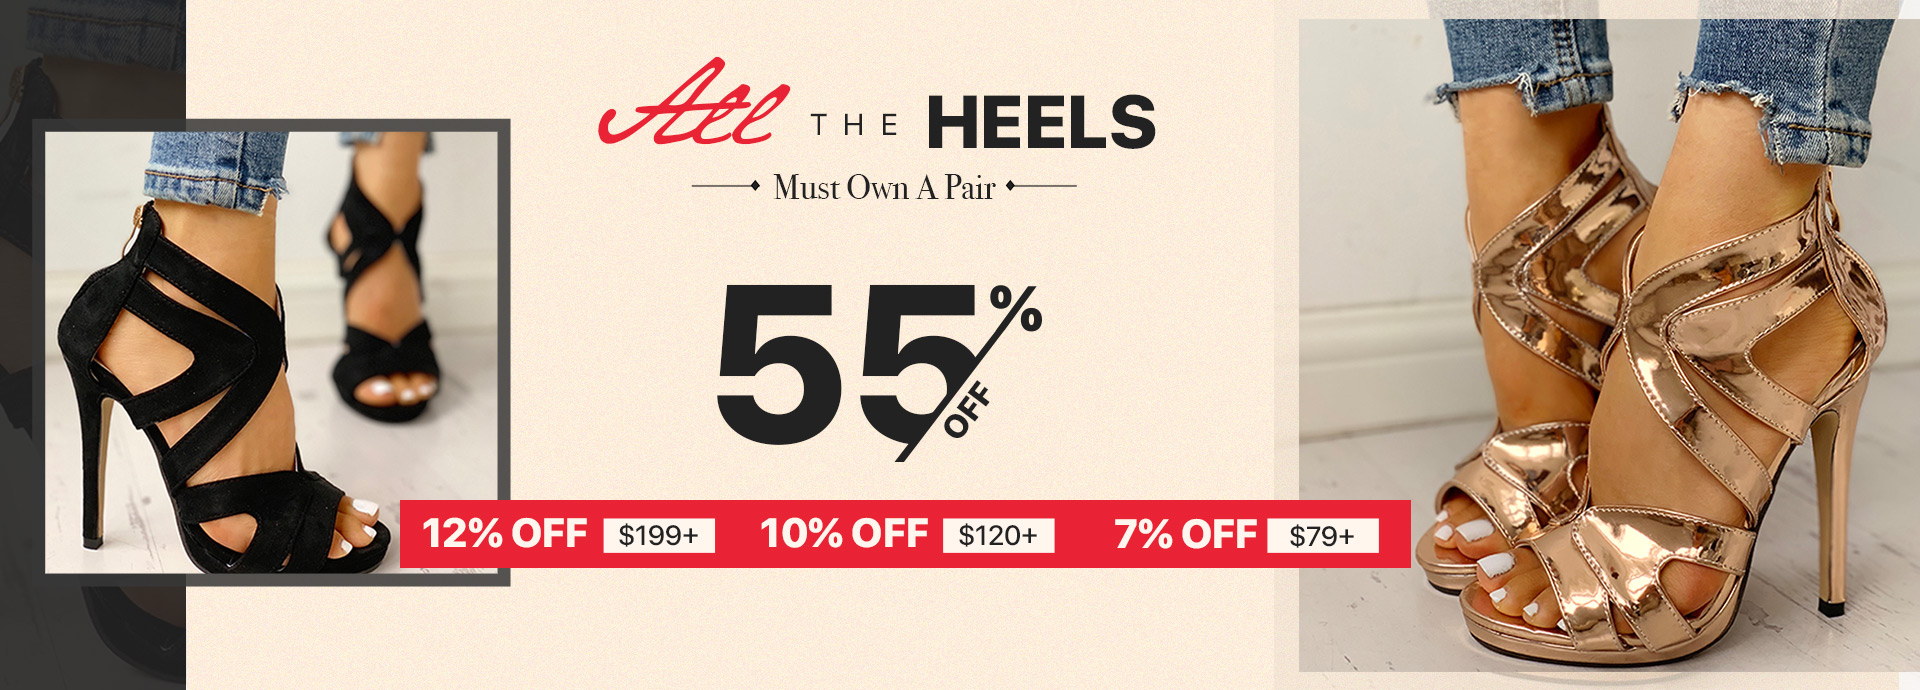 All The Heels